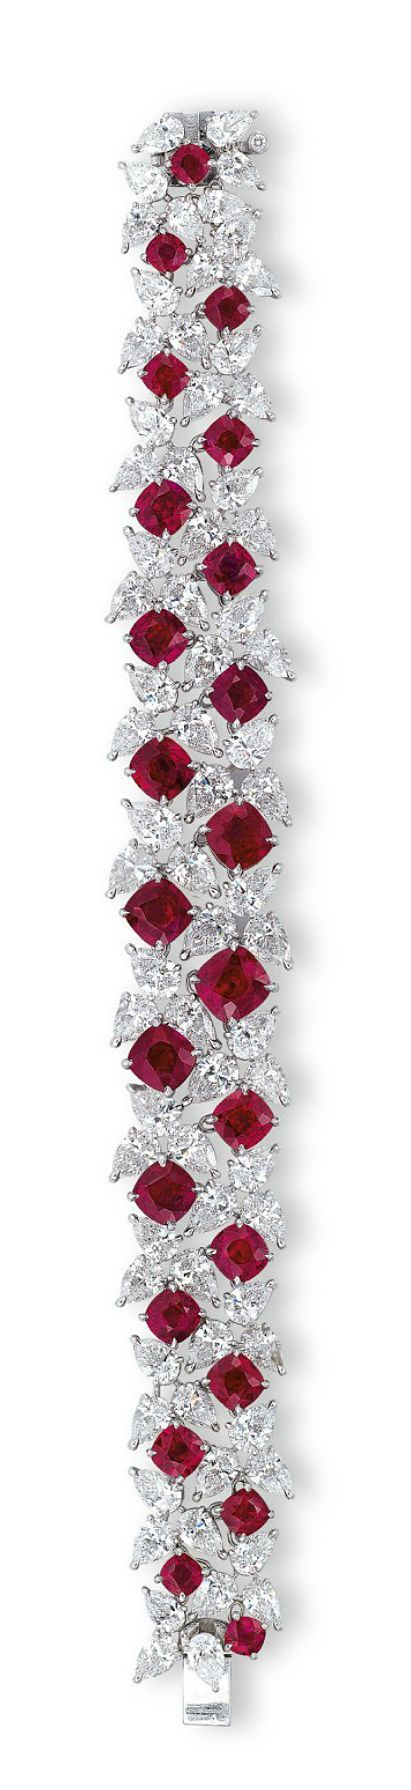 A RARE RUBY AND DIAMOND BRACELET, BY FAIDEE The highly articulated pear-shaped diamond bracelet interspersed with twenty-three cushion-shaped rubies weighing approximately 23.21 carats total, the reverse accented by brilliant-cut diamonds, mounted in platinum, 17.0 cm long, in black Faidee case Signed and with maker's mark for Faidee